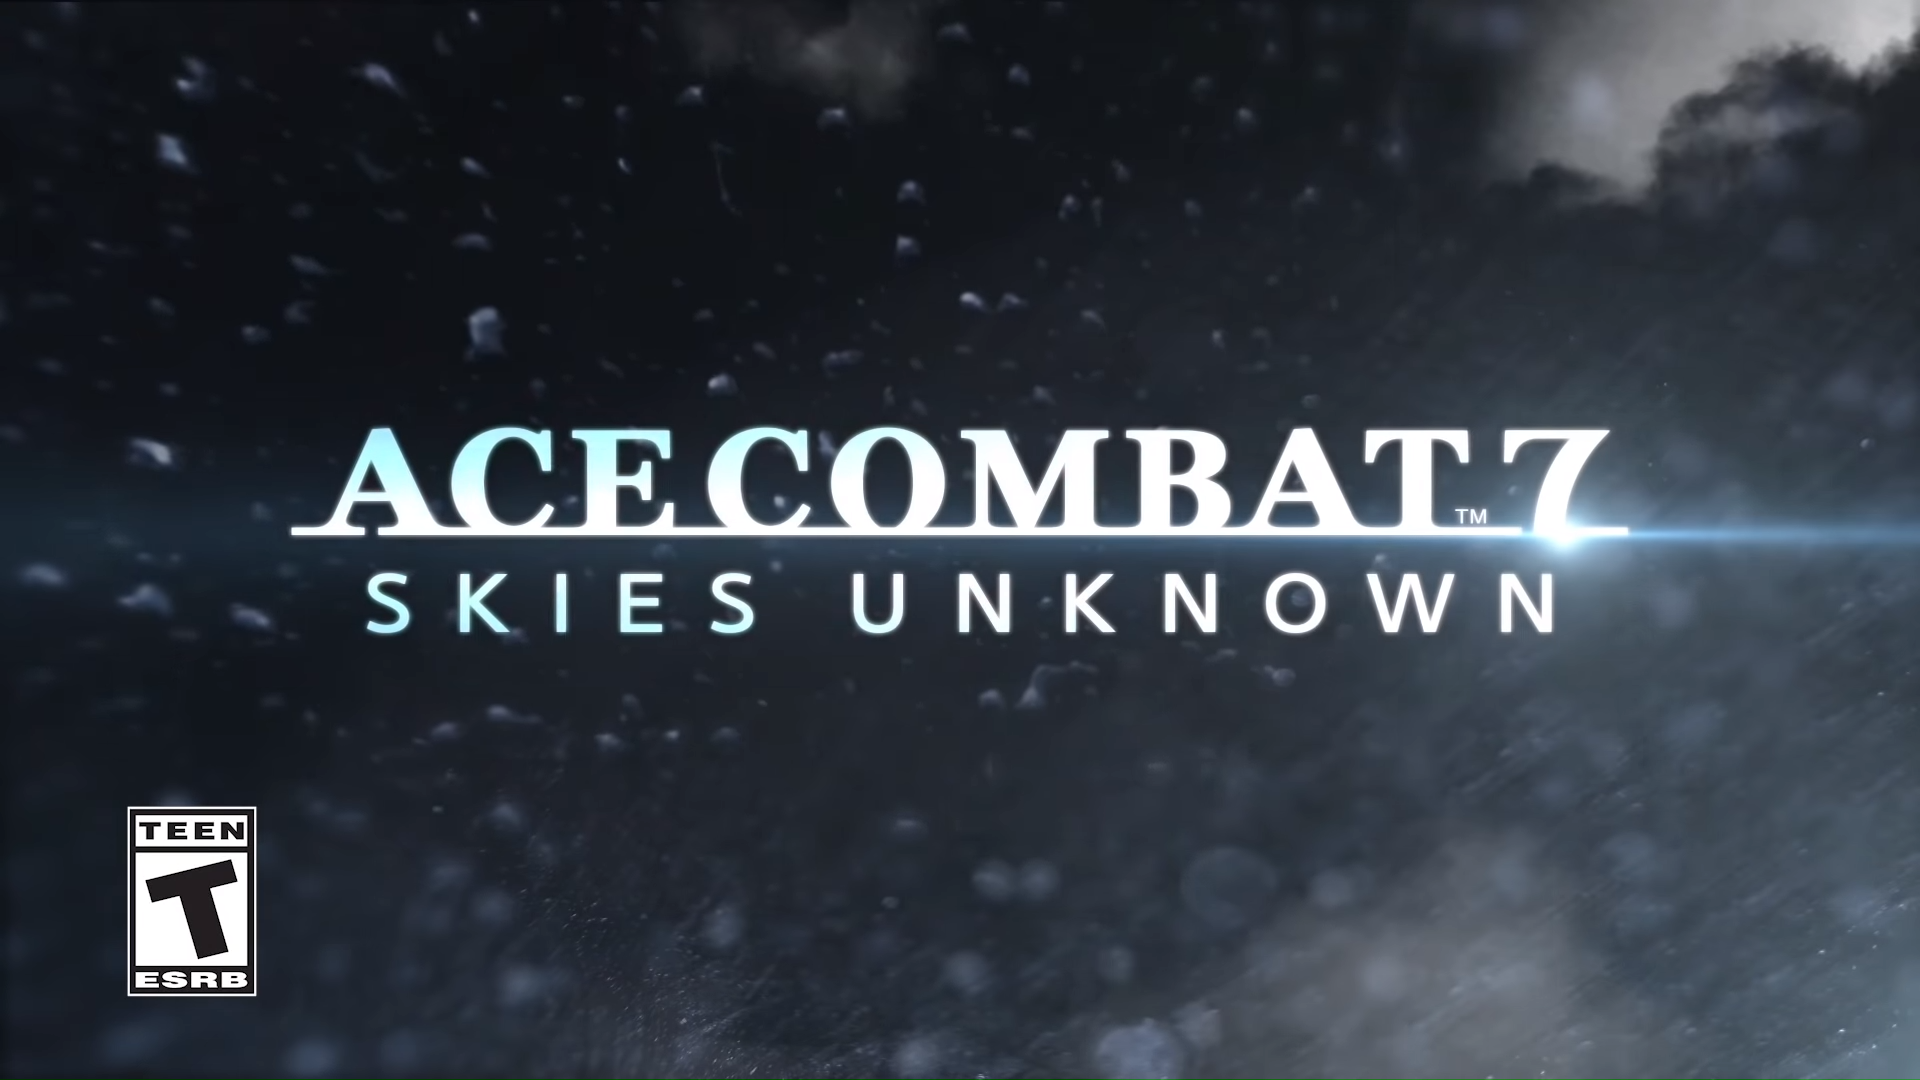 Ace Combat 7: Skies Unknown Season Pass contents announced